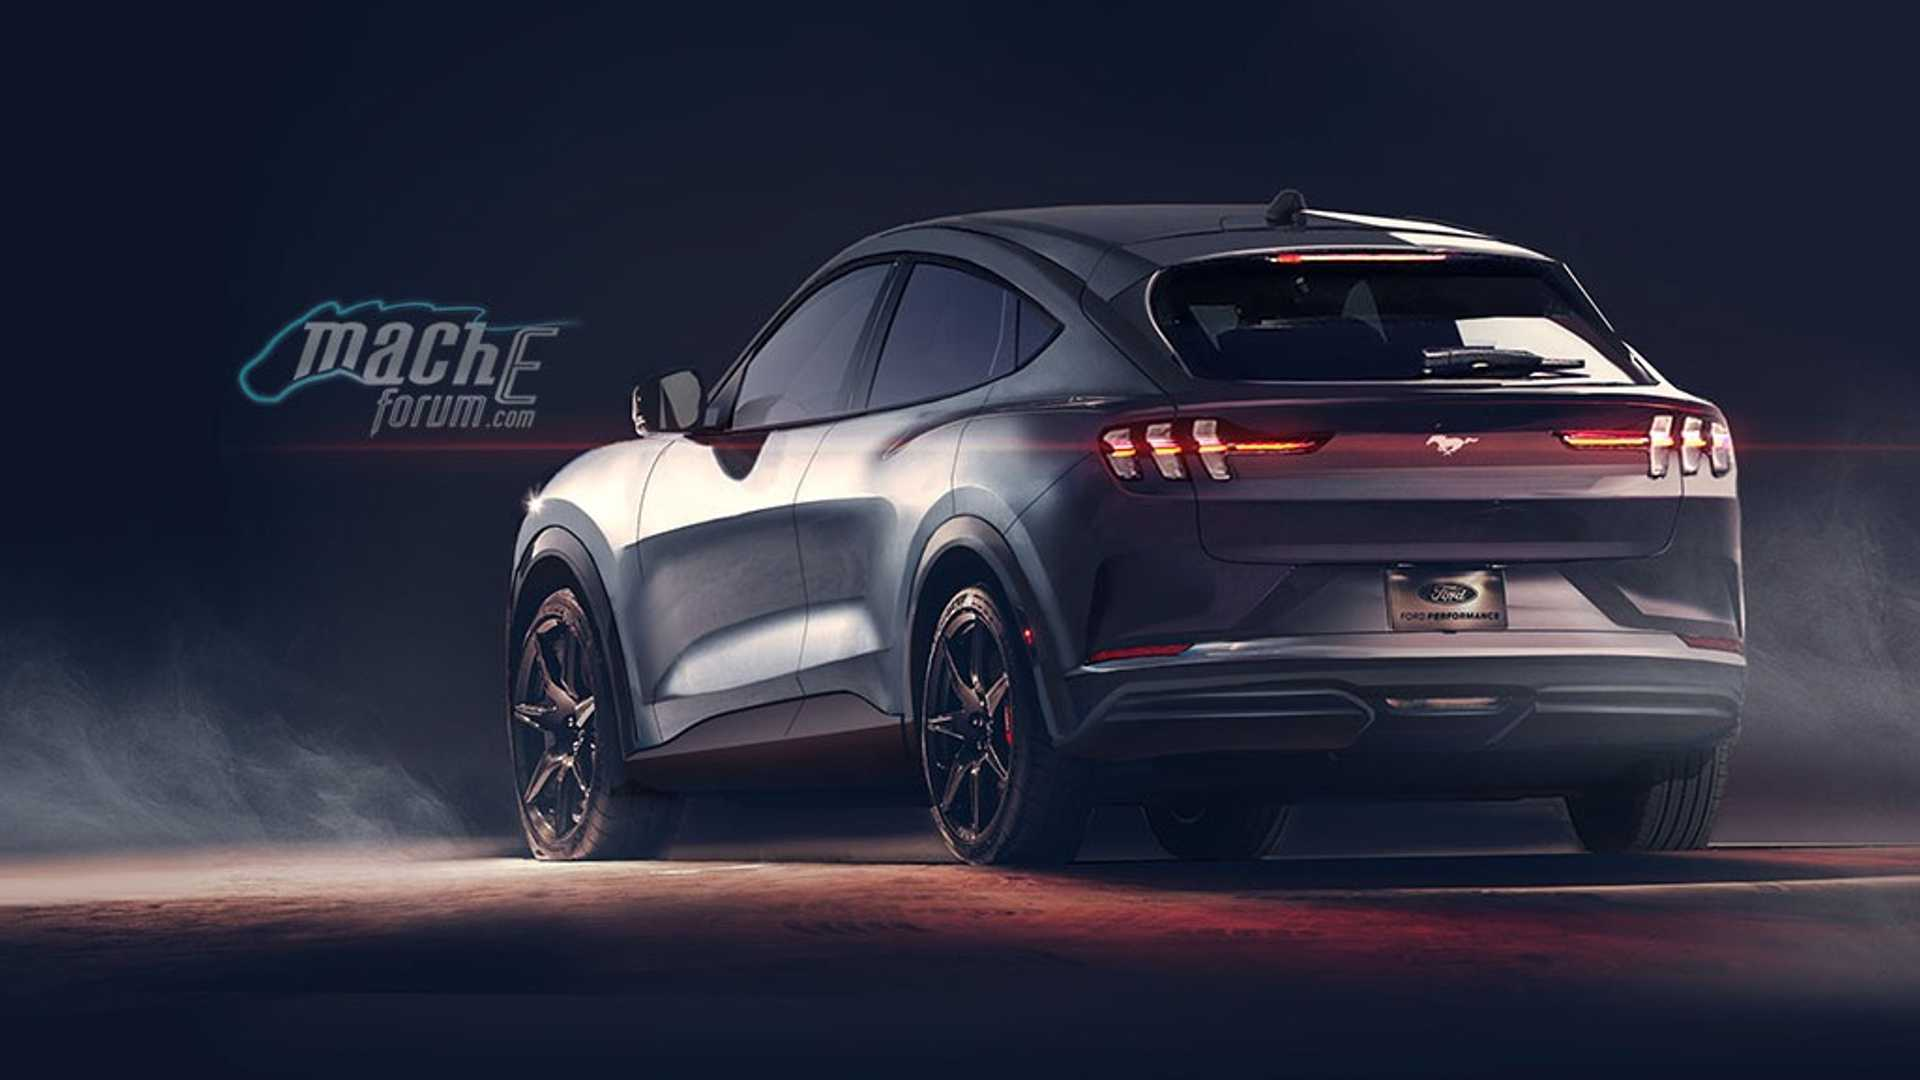 2020 Ford Mustang Mach-E 22